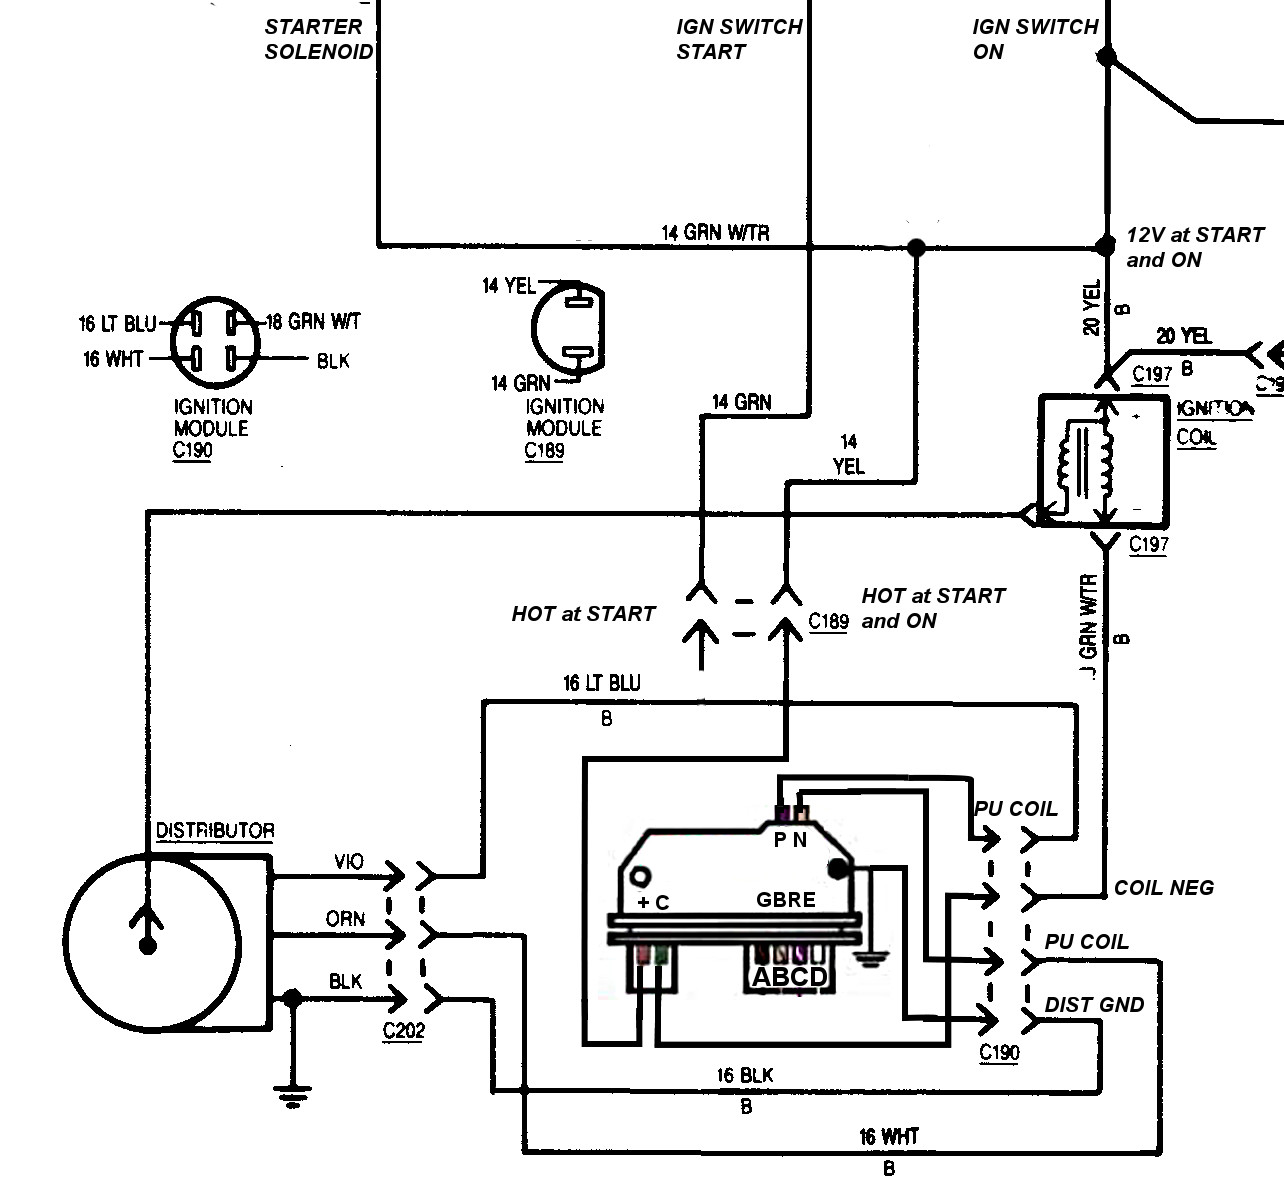 Single Point Distributor Wiring Diagram Gm Libraries Type Ignition Schematic Simple Diagrams